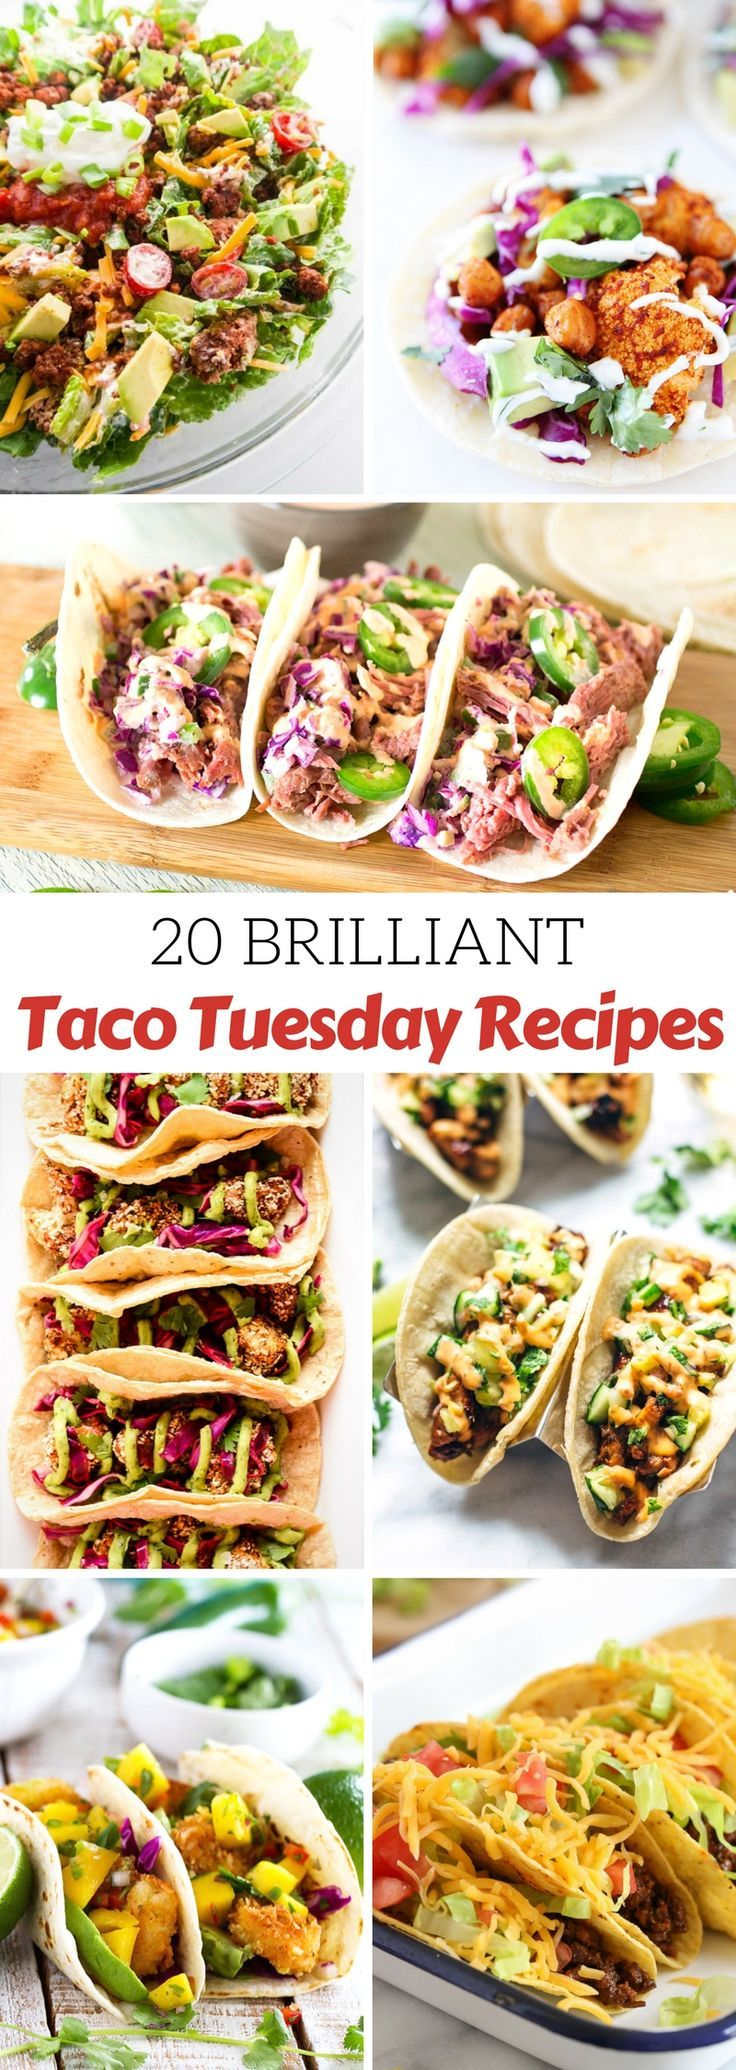 Up your Taco Tuesday game with this fabulous collection of 20 of the best and most beautiful tacos... just in time for Cinco de Mayo!